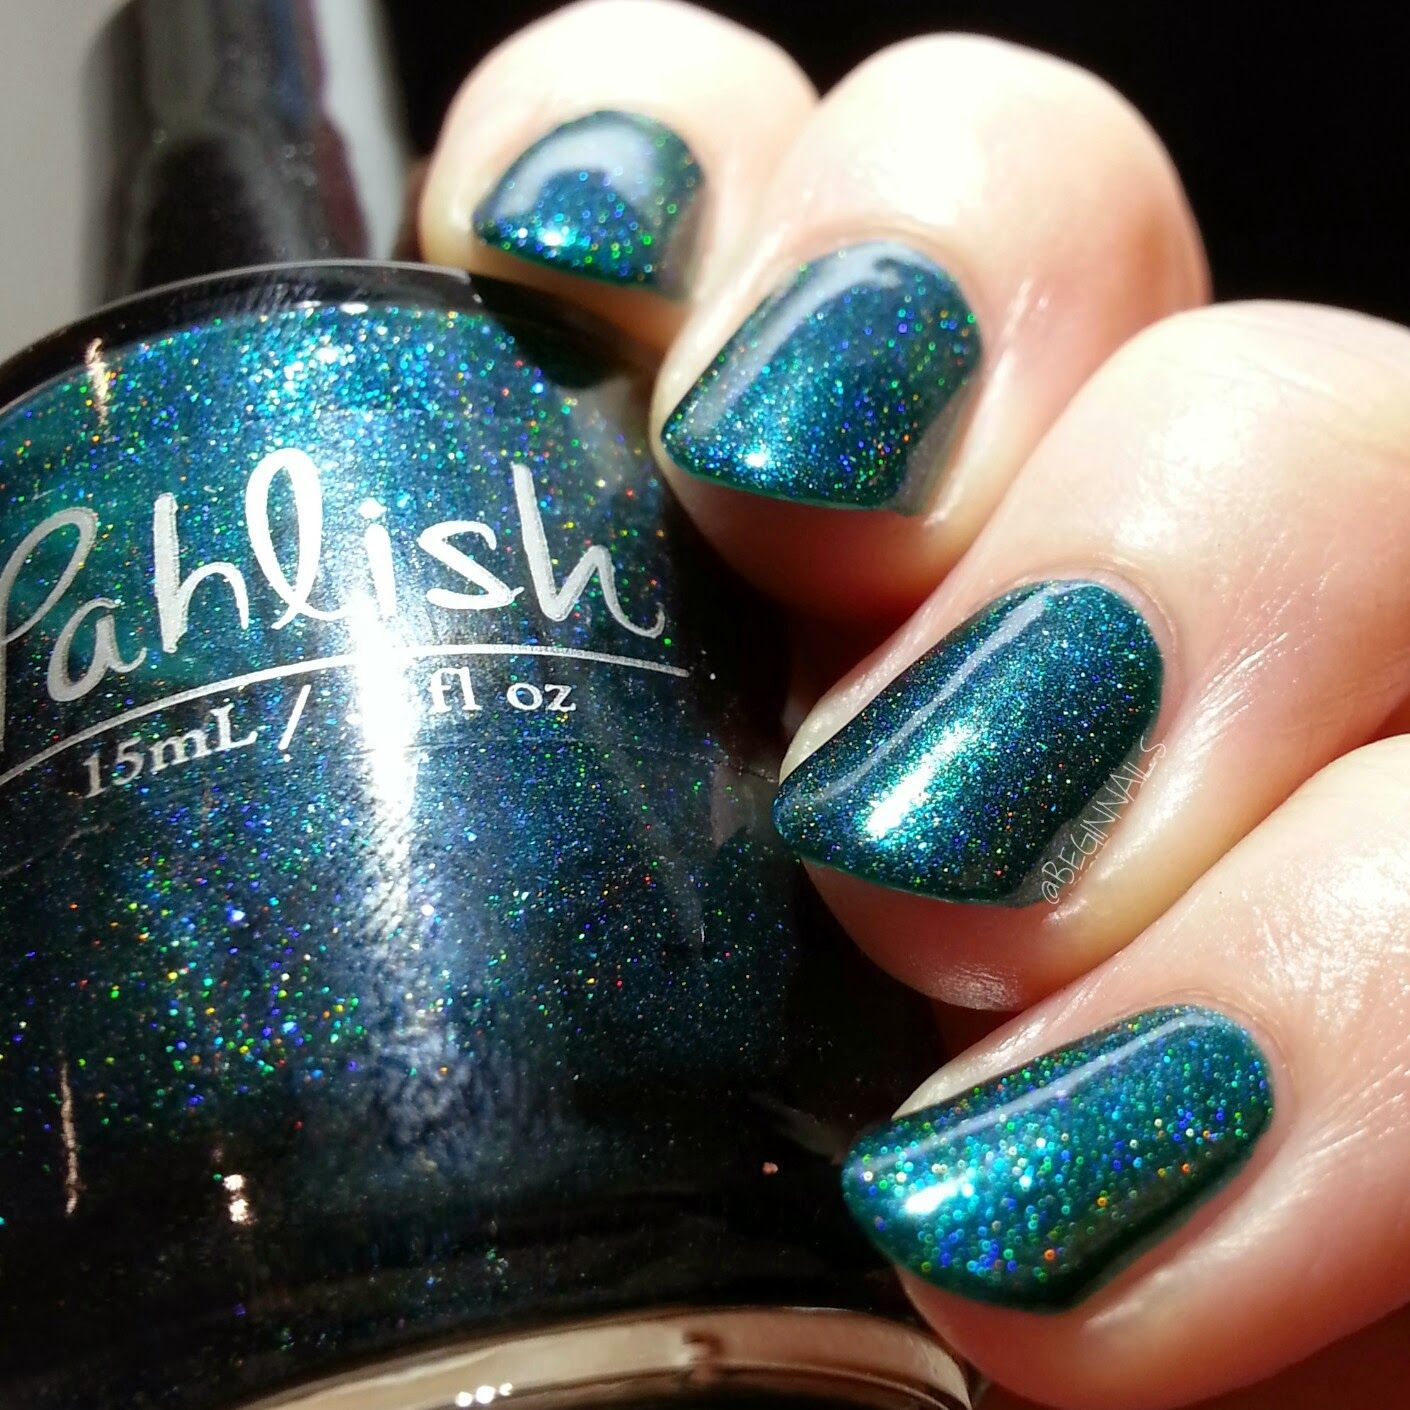 BeginNails: Every Journey Has a Beginning: April 2015 A Box, Indied Swatch and Review  Quite Ribbiting from Pahlish topped with Gem Glam Top Coat from Dream Polish swatched by @beginnails  http://www.beginnails.blogspot.com/2015/04/april-2015-box-indied-swatch-and-review.html